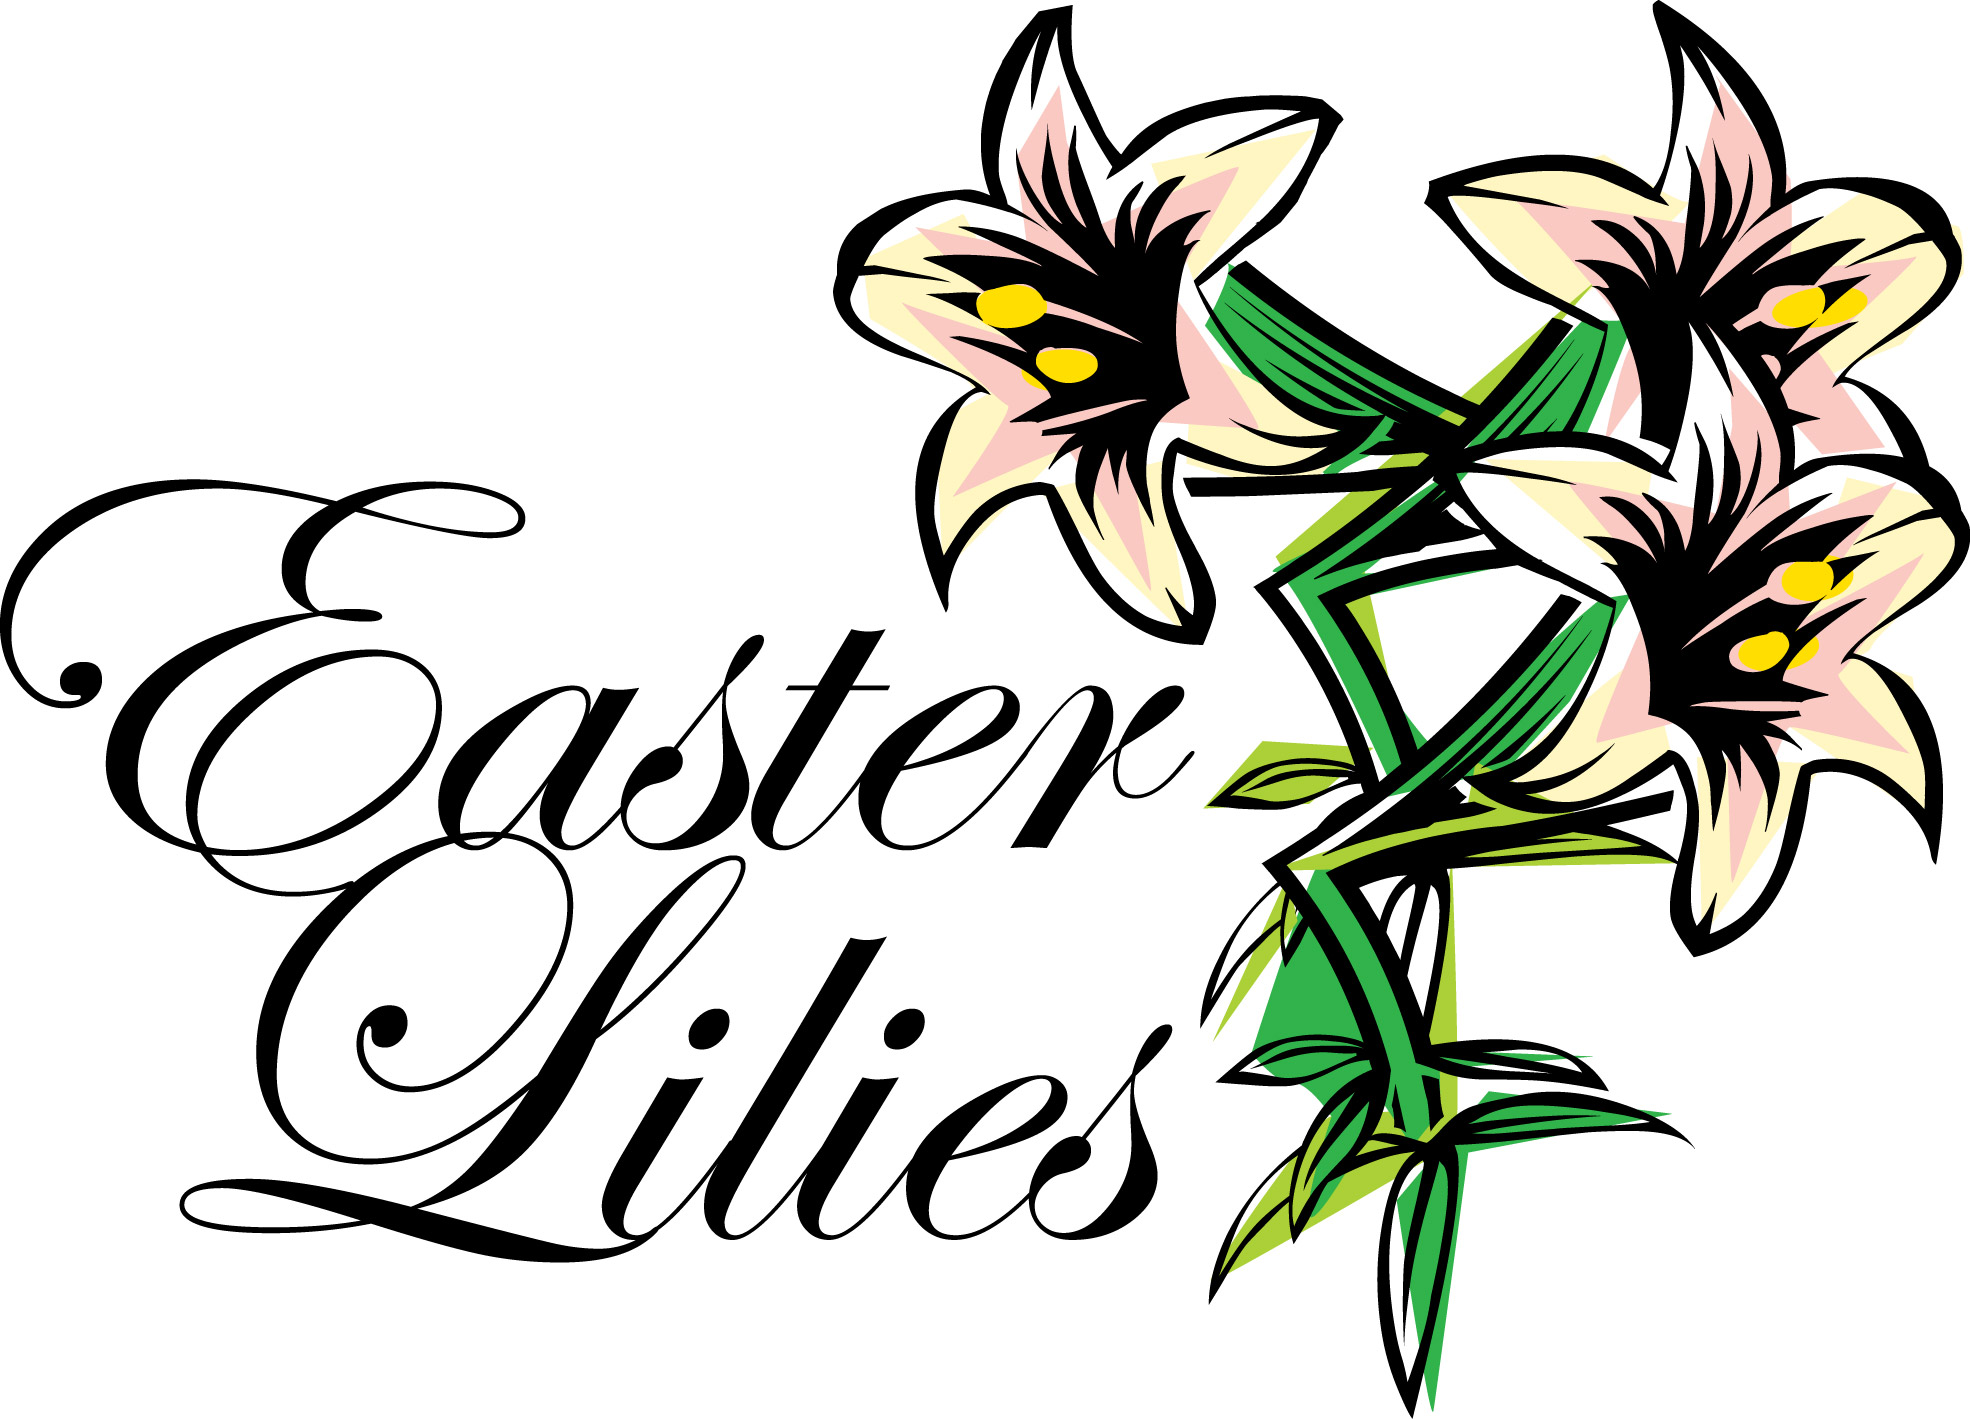 1970x1419 Easter Lily Clip Art Black And White. Easter Cross Clipart Black